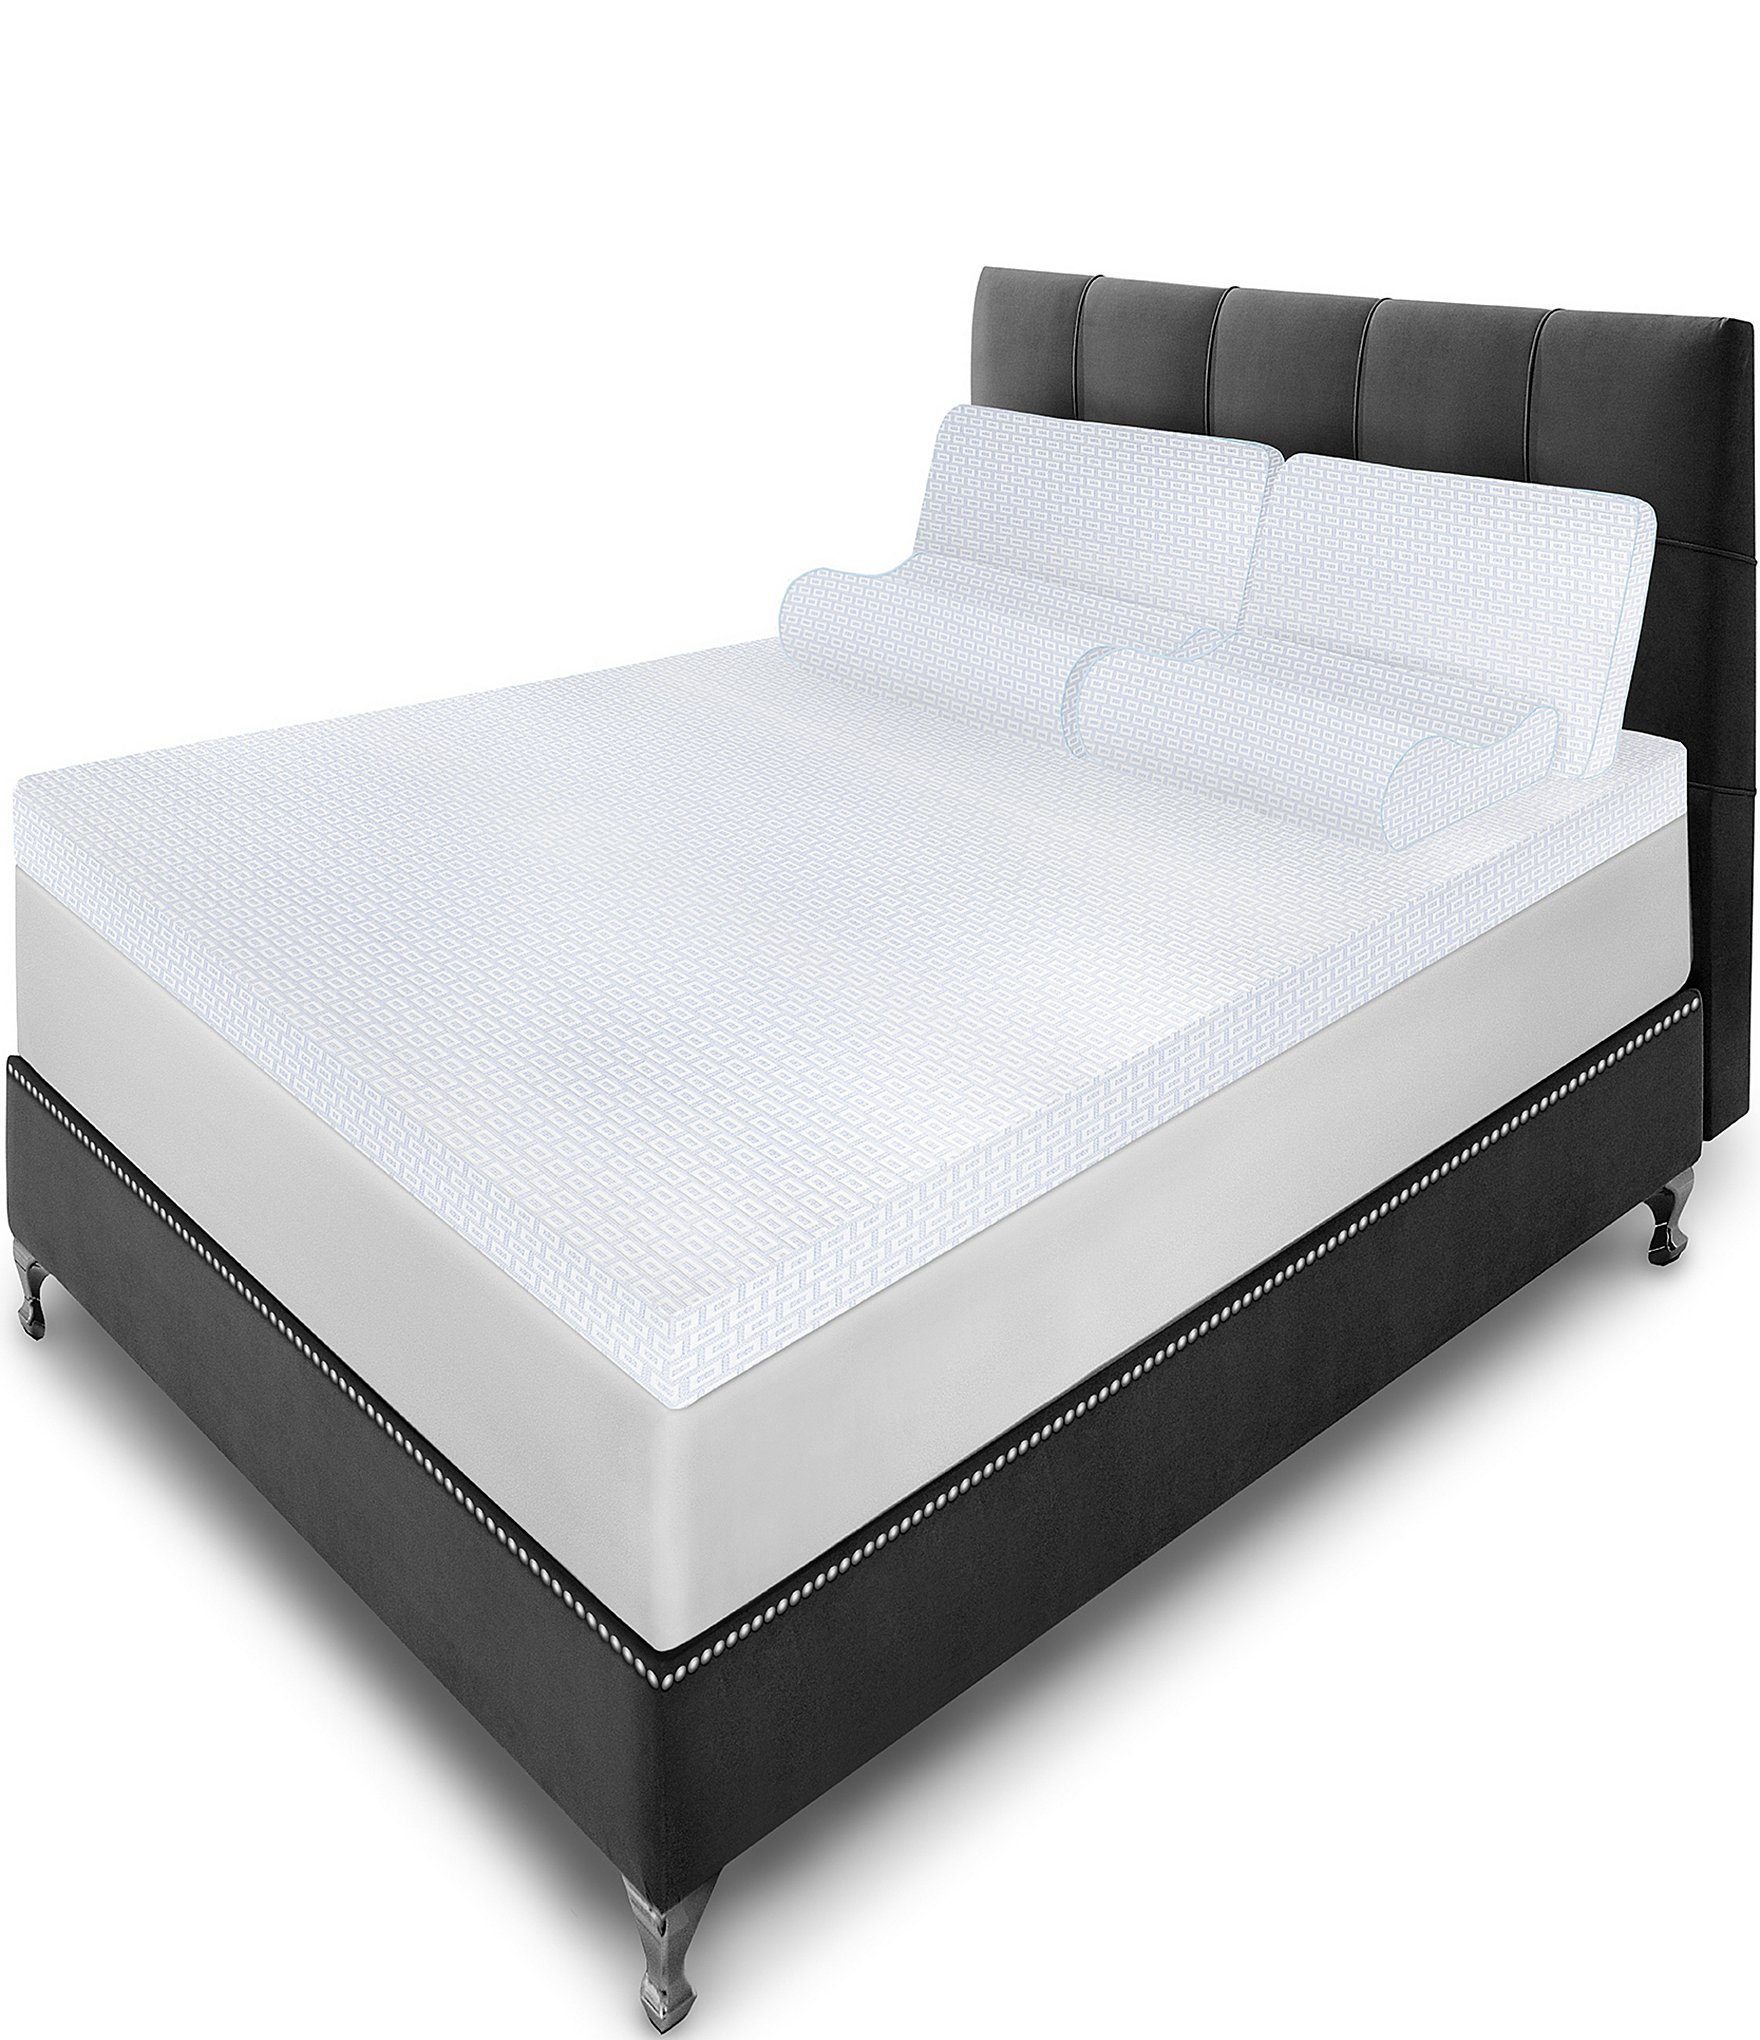 Sensorpedic Sensorcool Elite Gel Infused Memory Foam